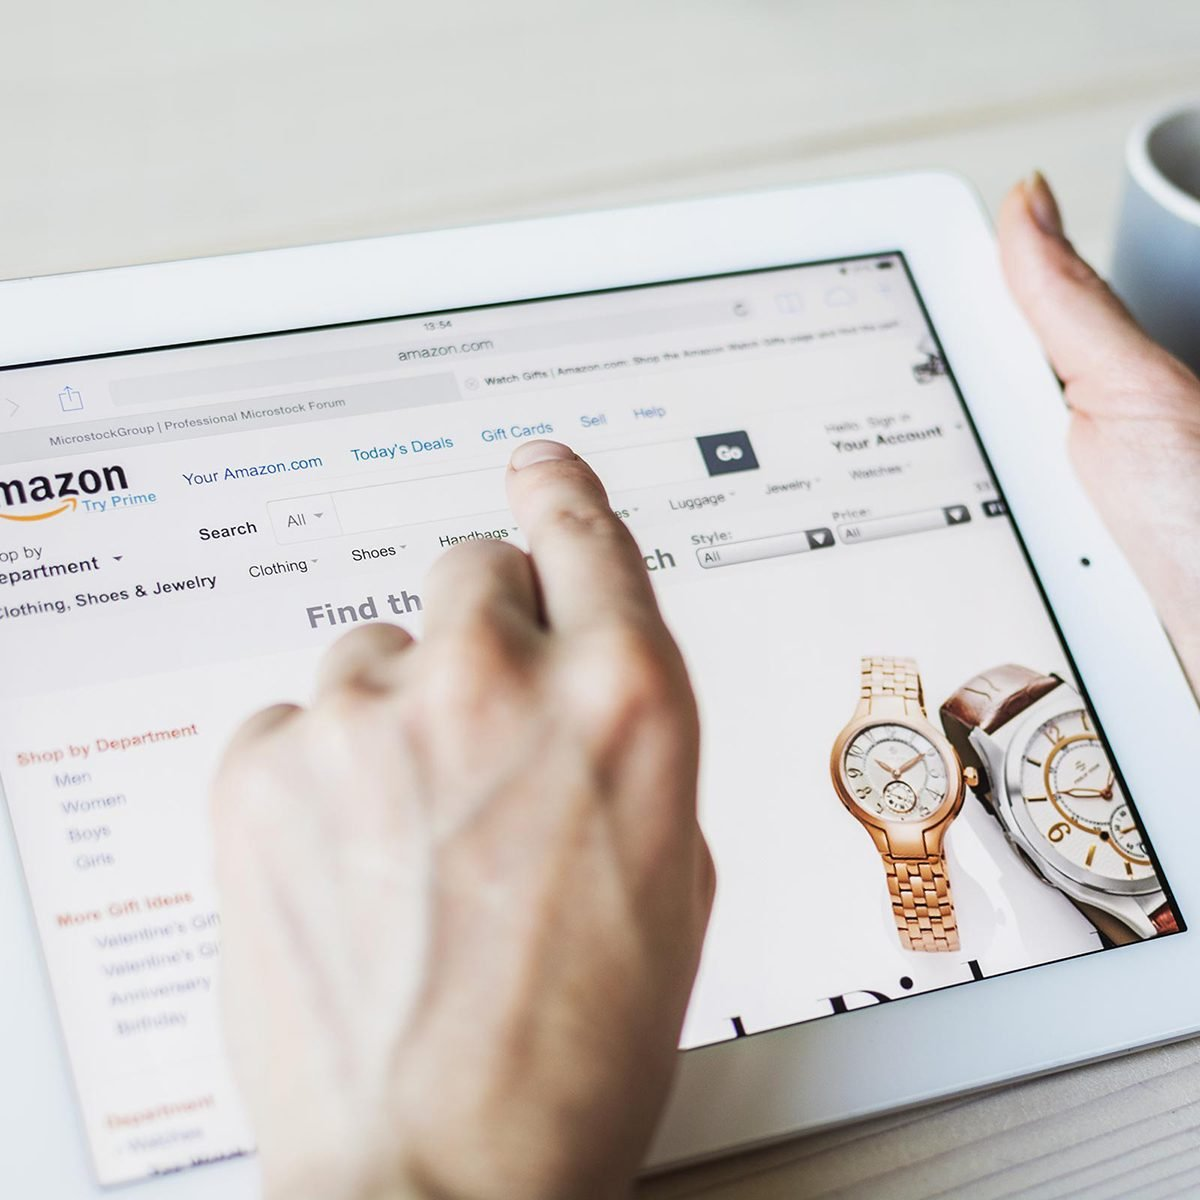 Person browsing Amazon on a tablet